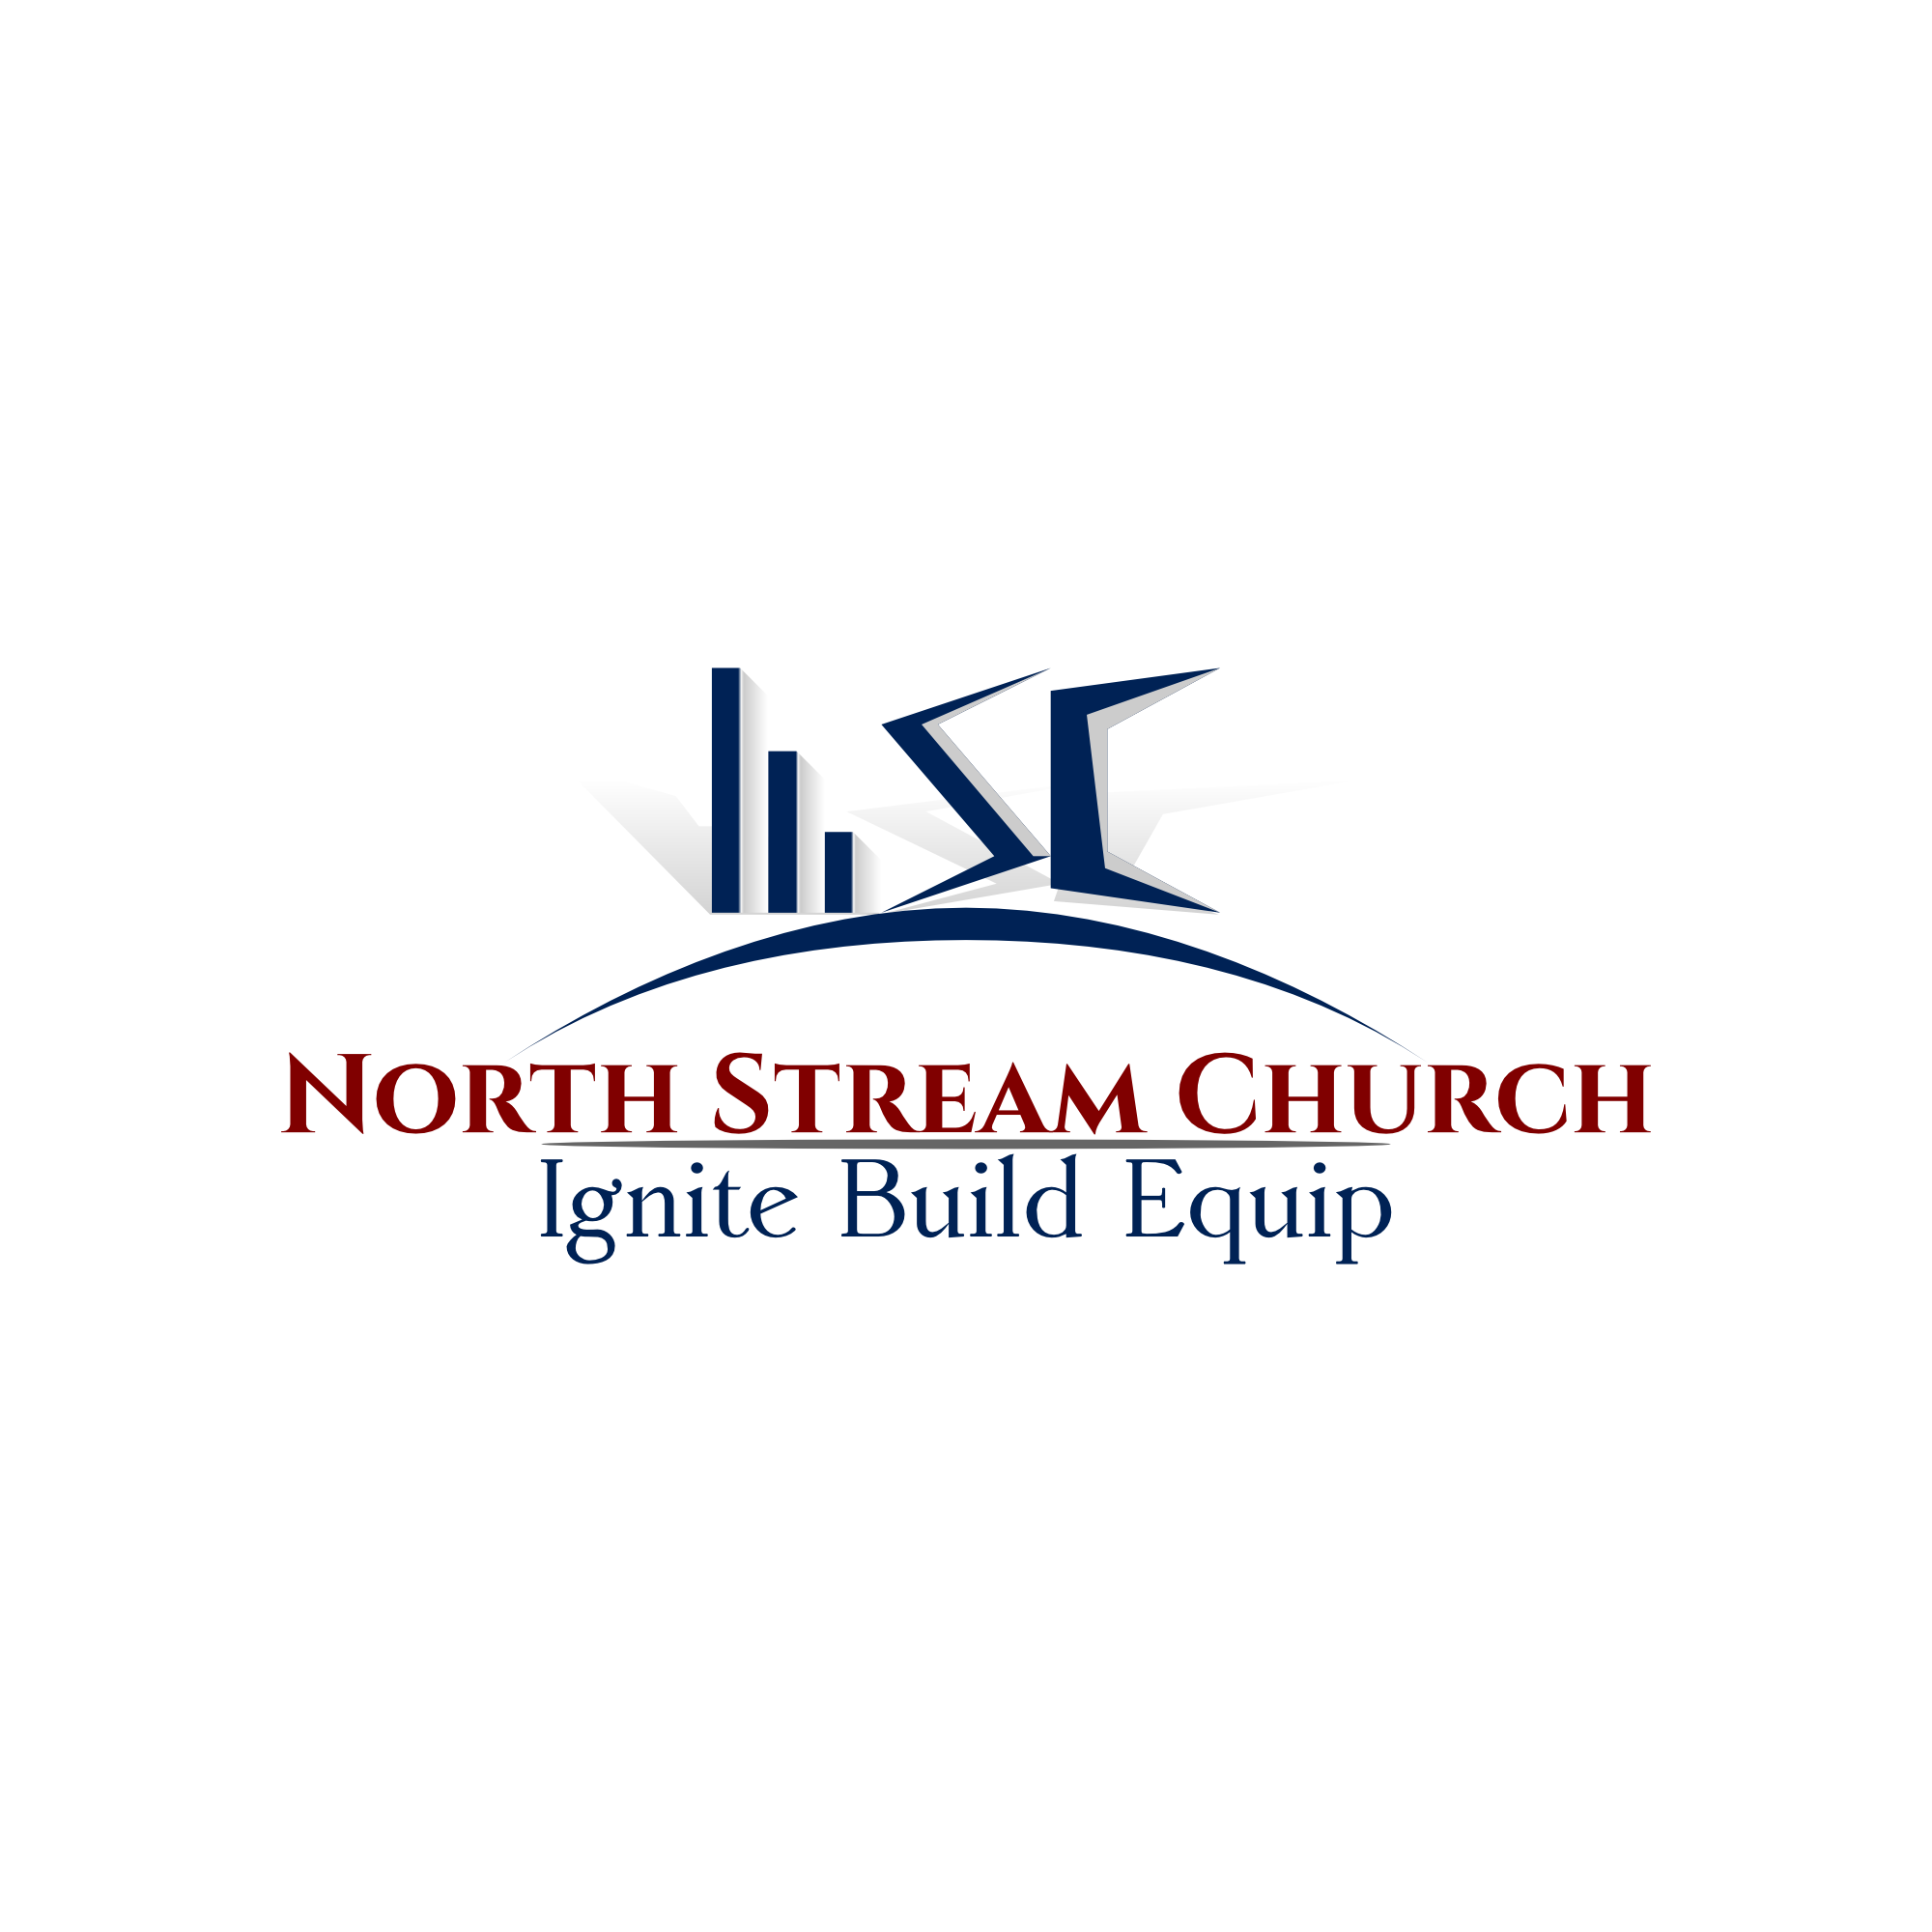 Logo Design by mmasic - Entry No. 7 in the Logo Design Contest Creative Logo Design for North Stream Church.